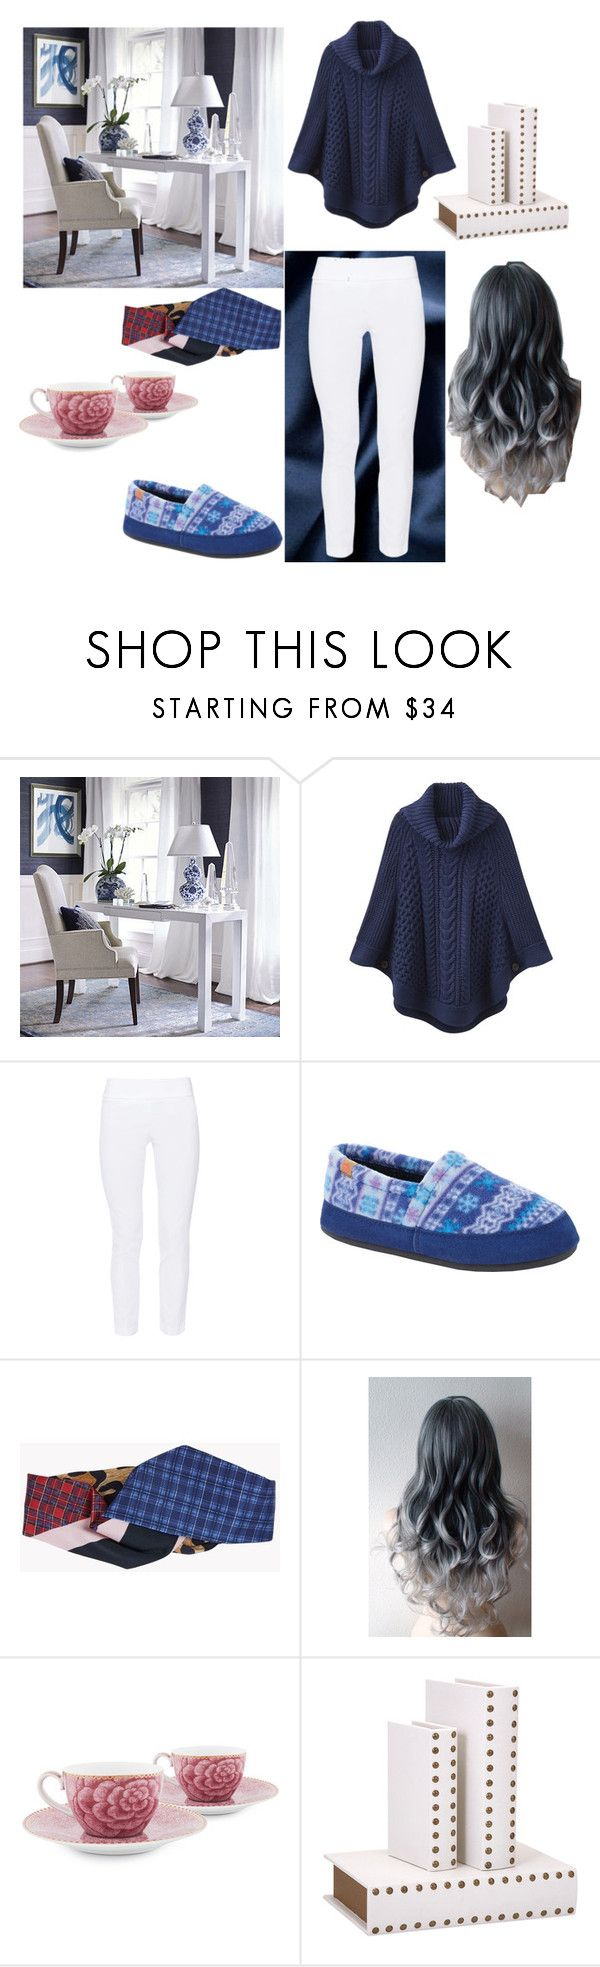 """""""Untitled #497"""" by yasm-ina ❤ liked on Polyvore featuring Frontgate, Joules, ELLIOTT LAUREN, Acorn, Dsquared2 and PiP Studio"""